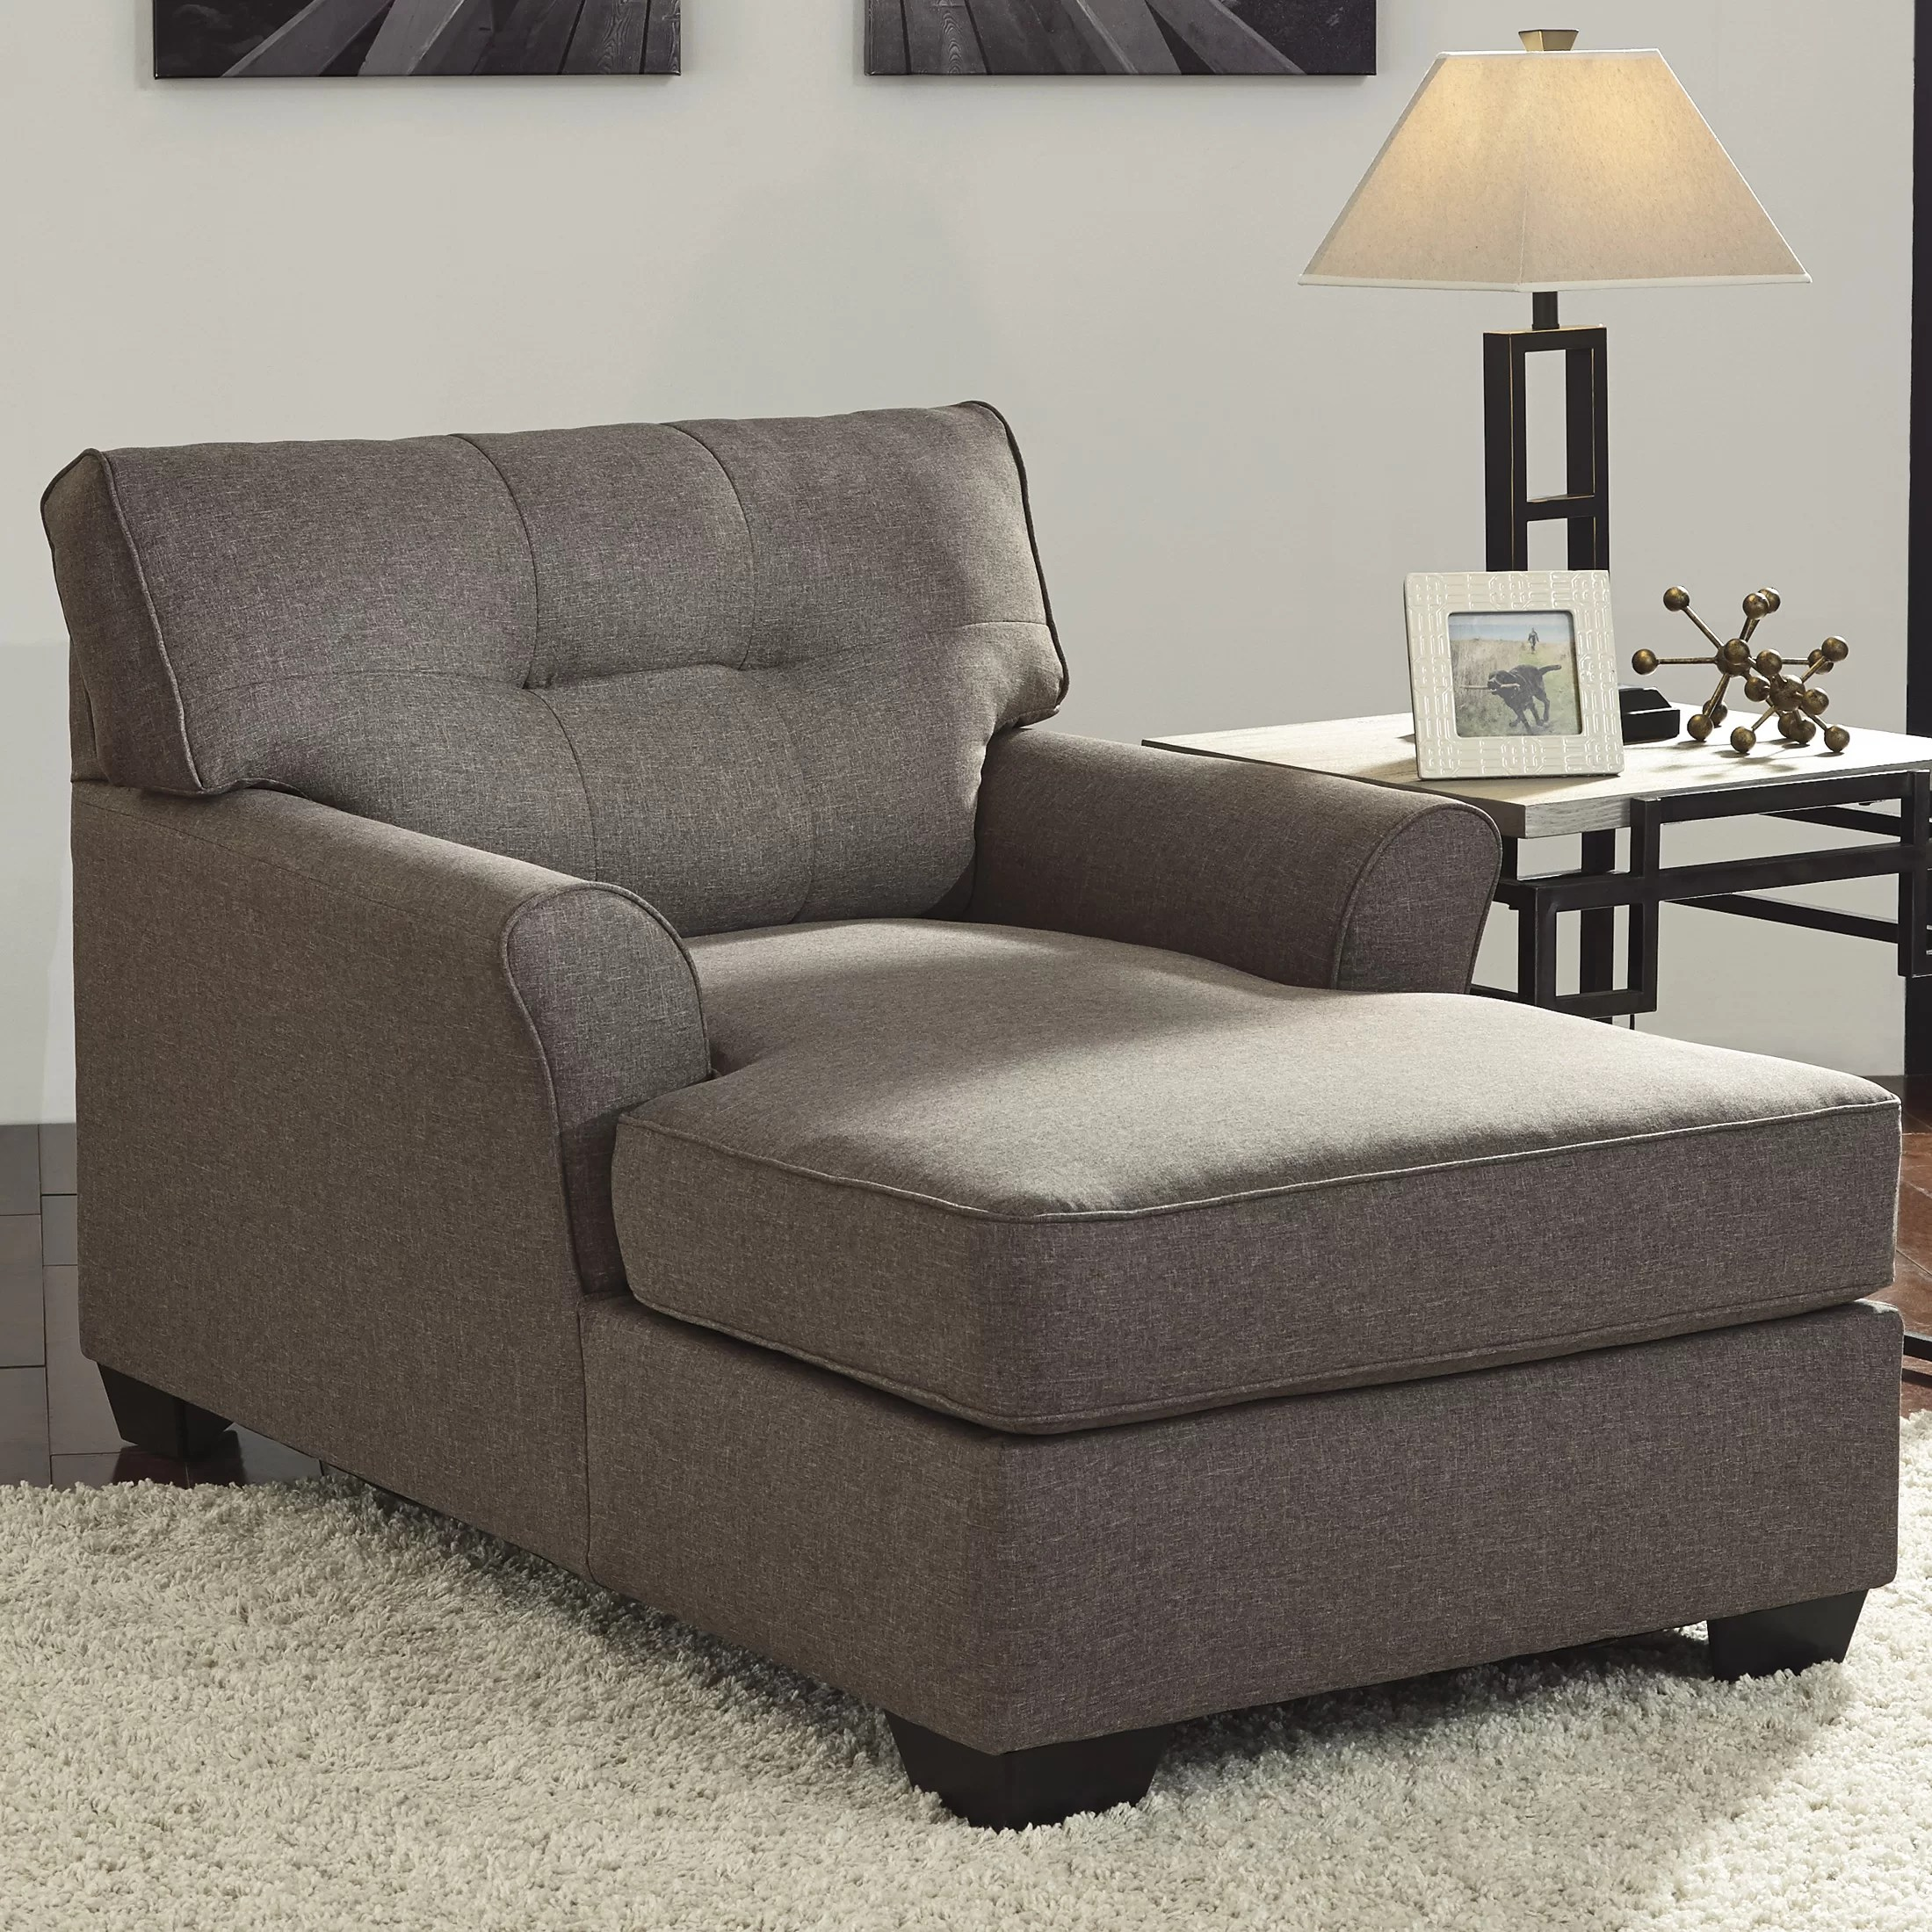 Chair Lounge Signature Design By Ashley Tibbee Chaise Lounge And Reviews